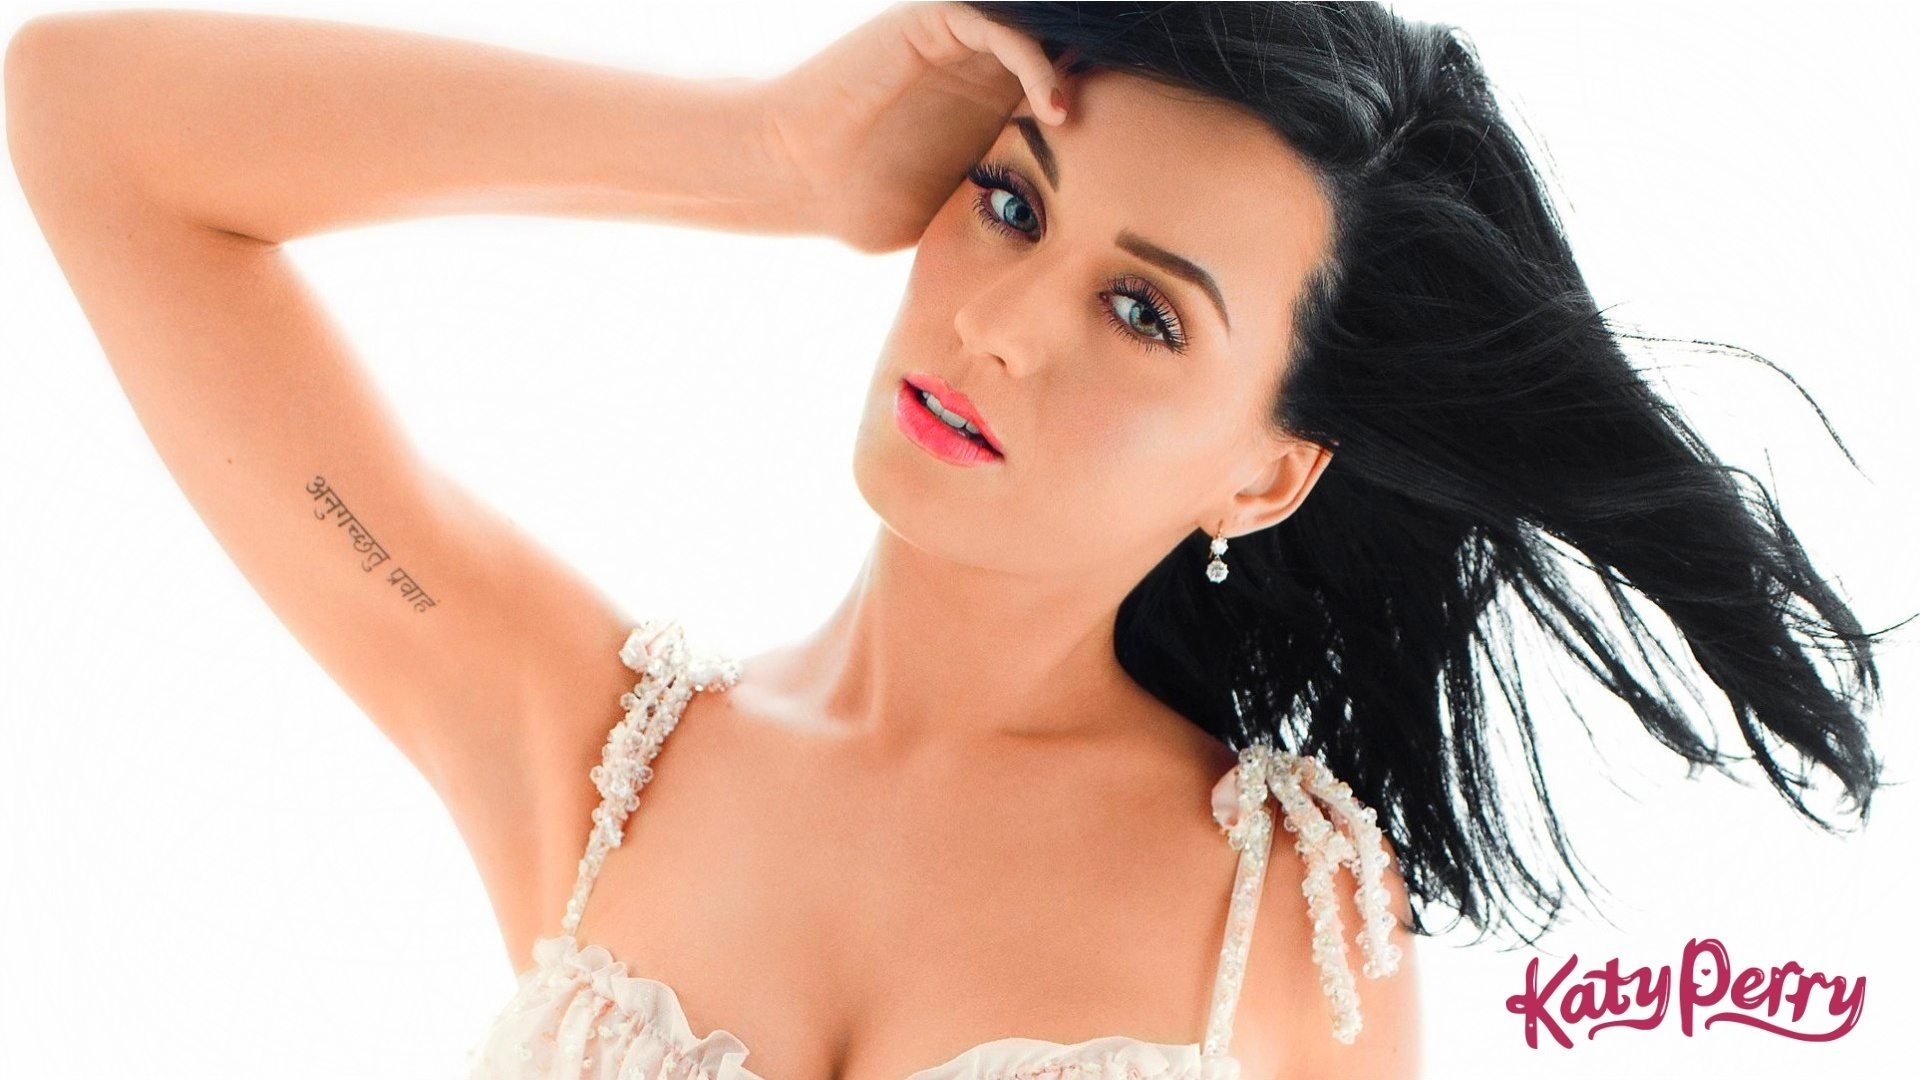 Katy Perry Facts